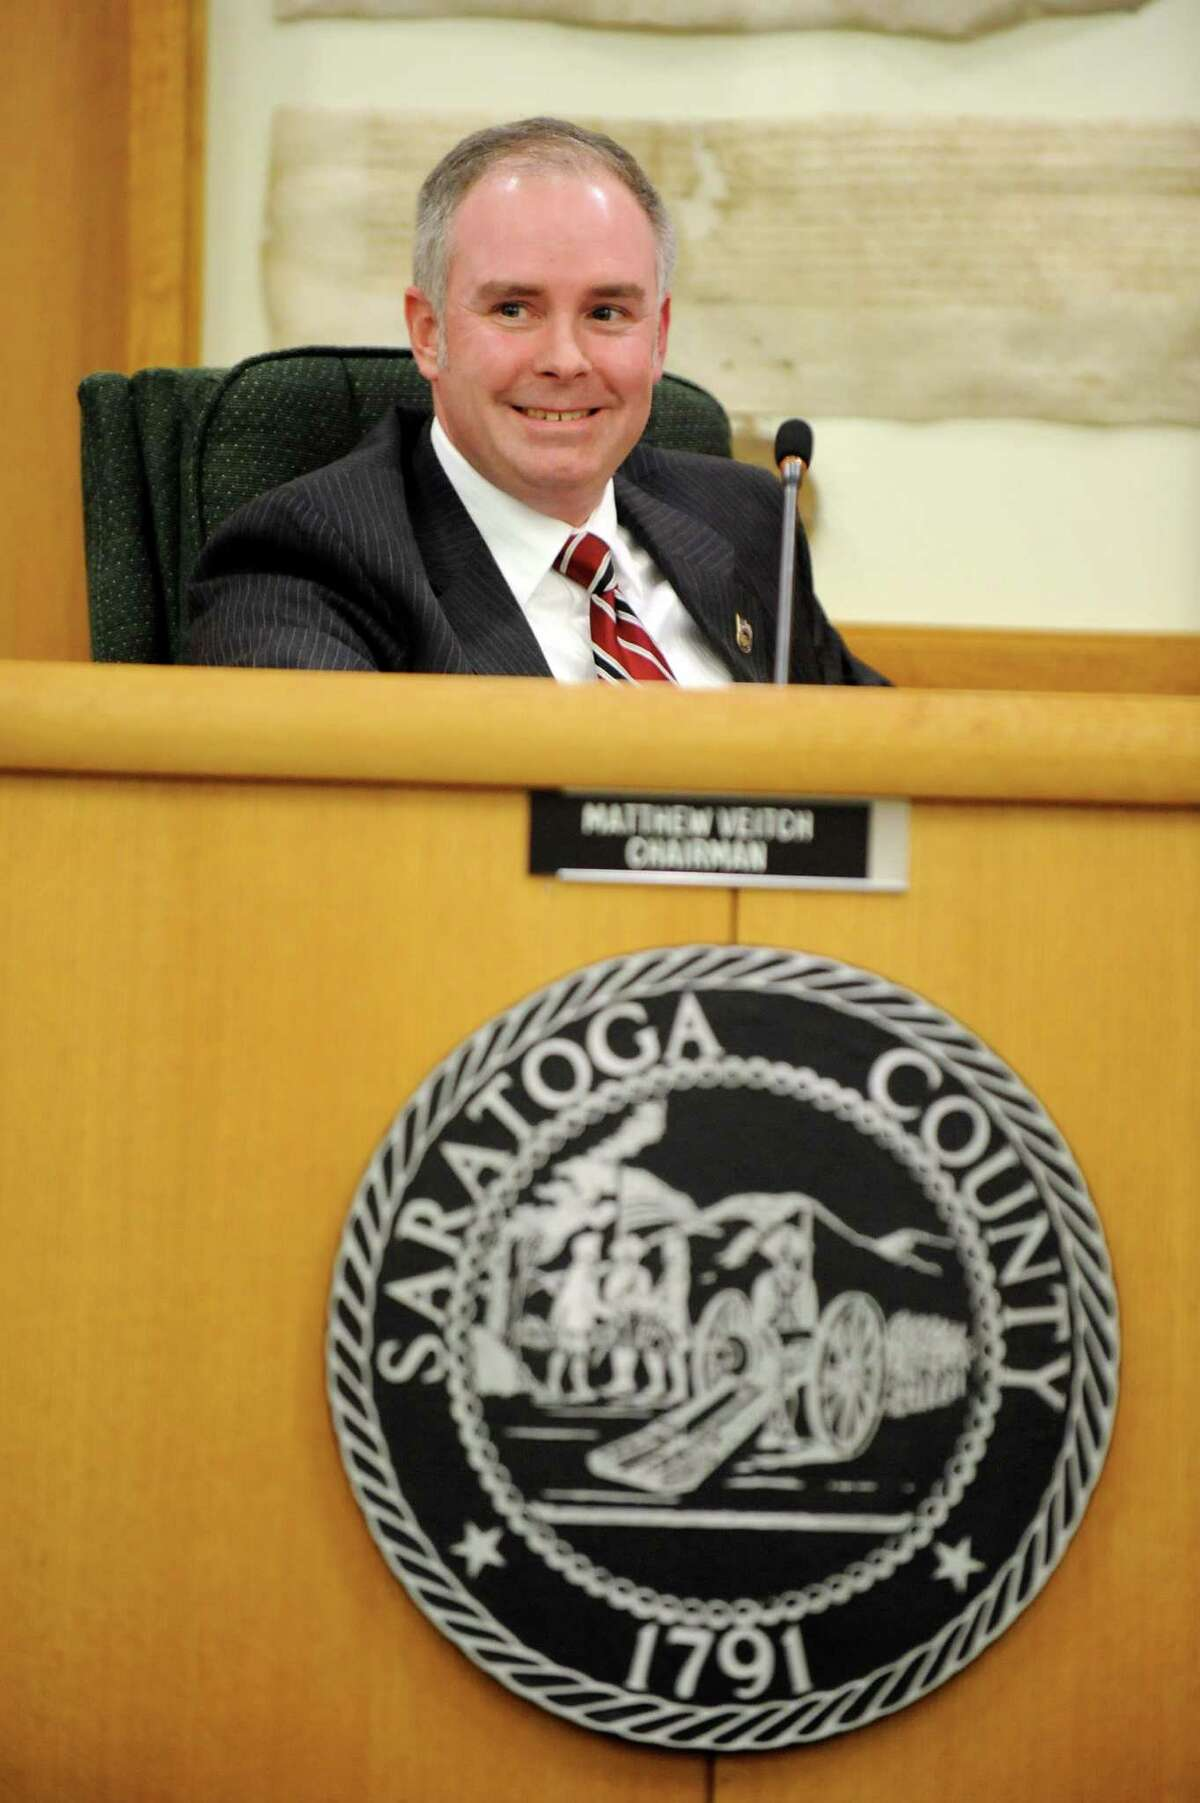 Incumbent Saratoga Springs Supervisor Matthew Veitch on Friday, Jan. 2, 2015, at the Saratoga County Board of Supervisors in Ballston Spa, N.Y. (Cindy Schultz / Times Union)